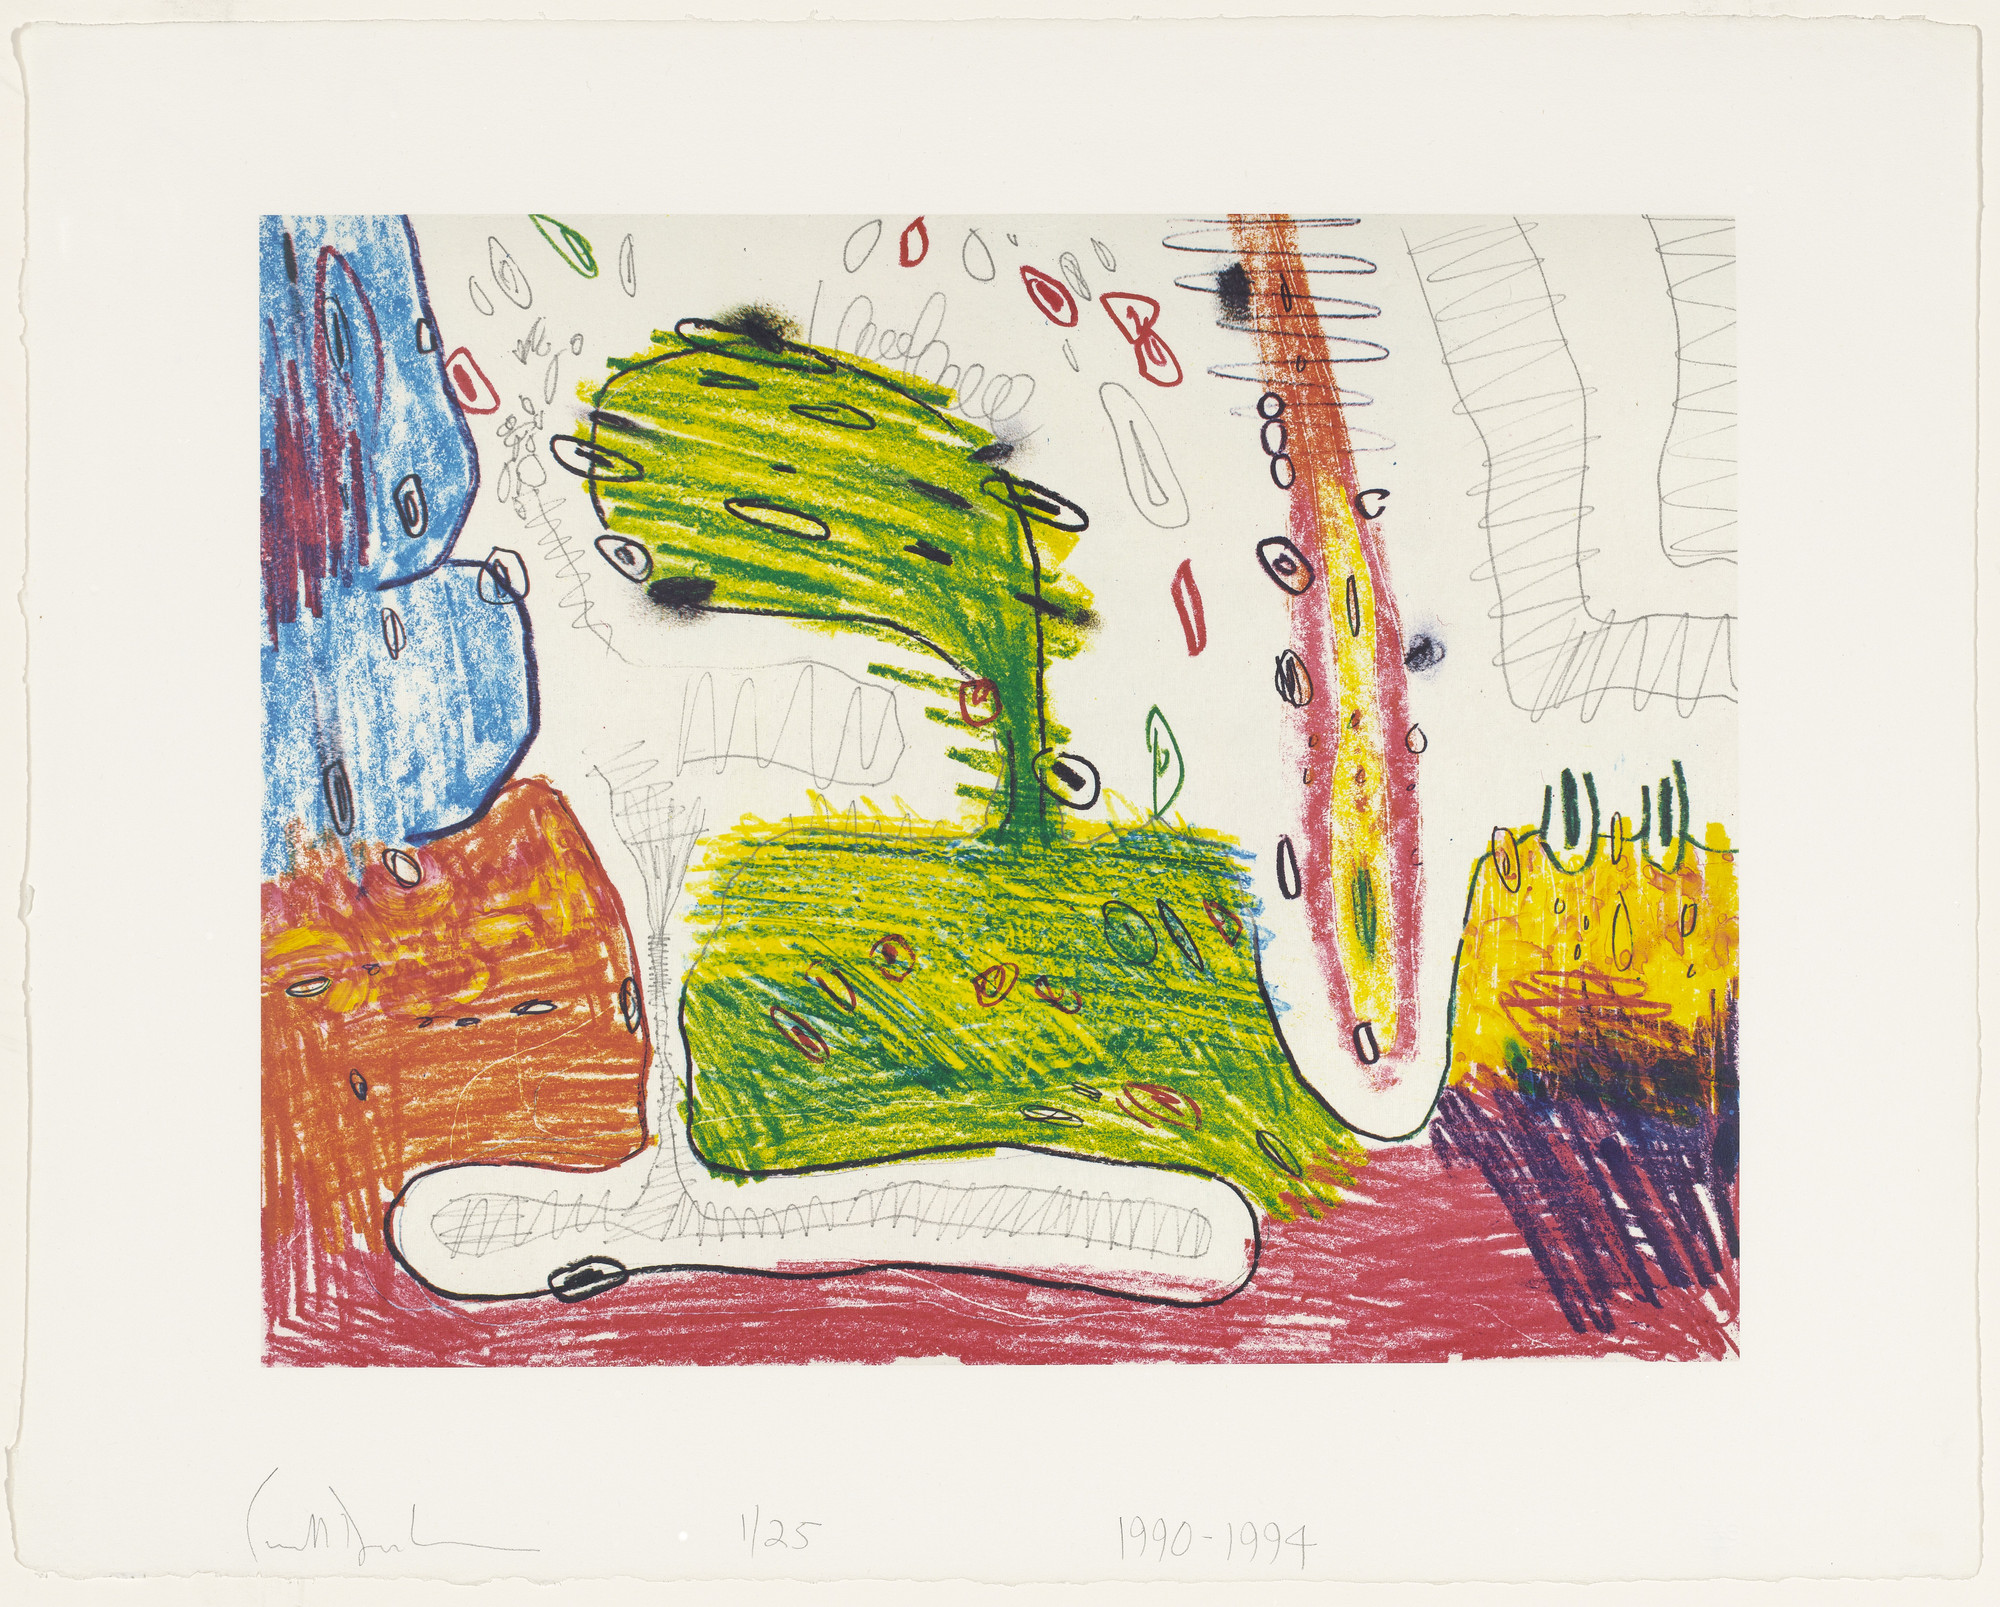 Carroll Dunham. Zeta from Seven Places. 1990-94